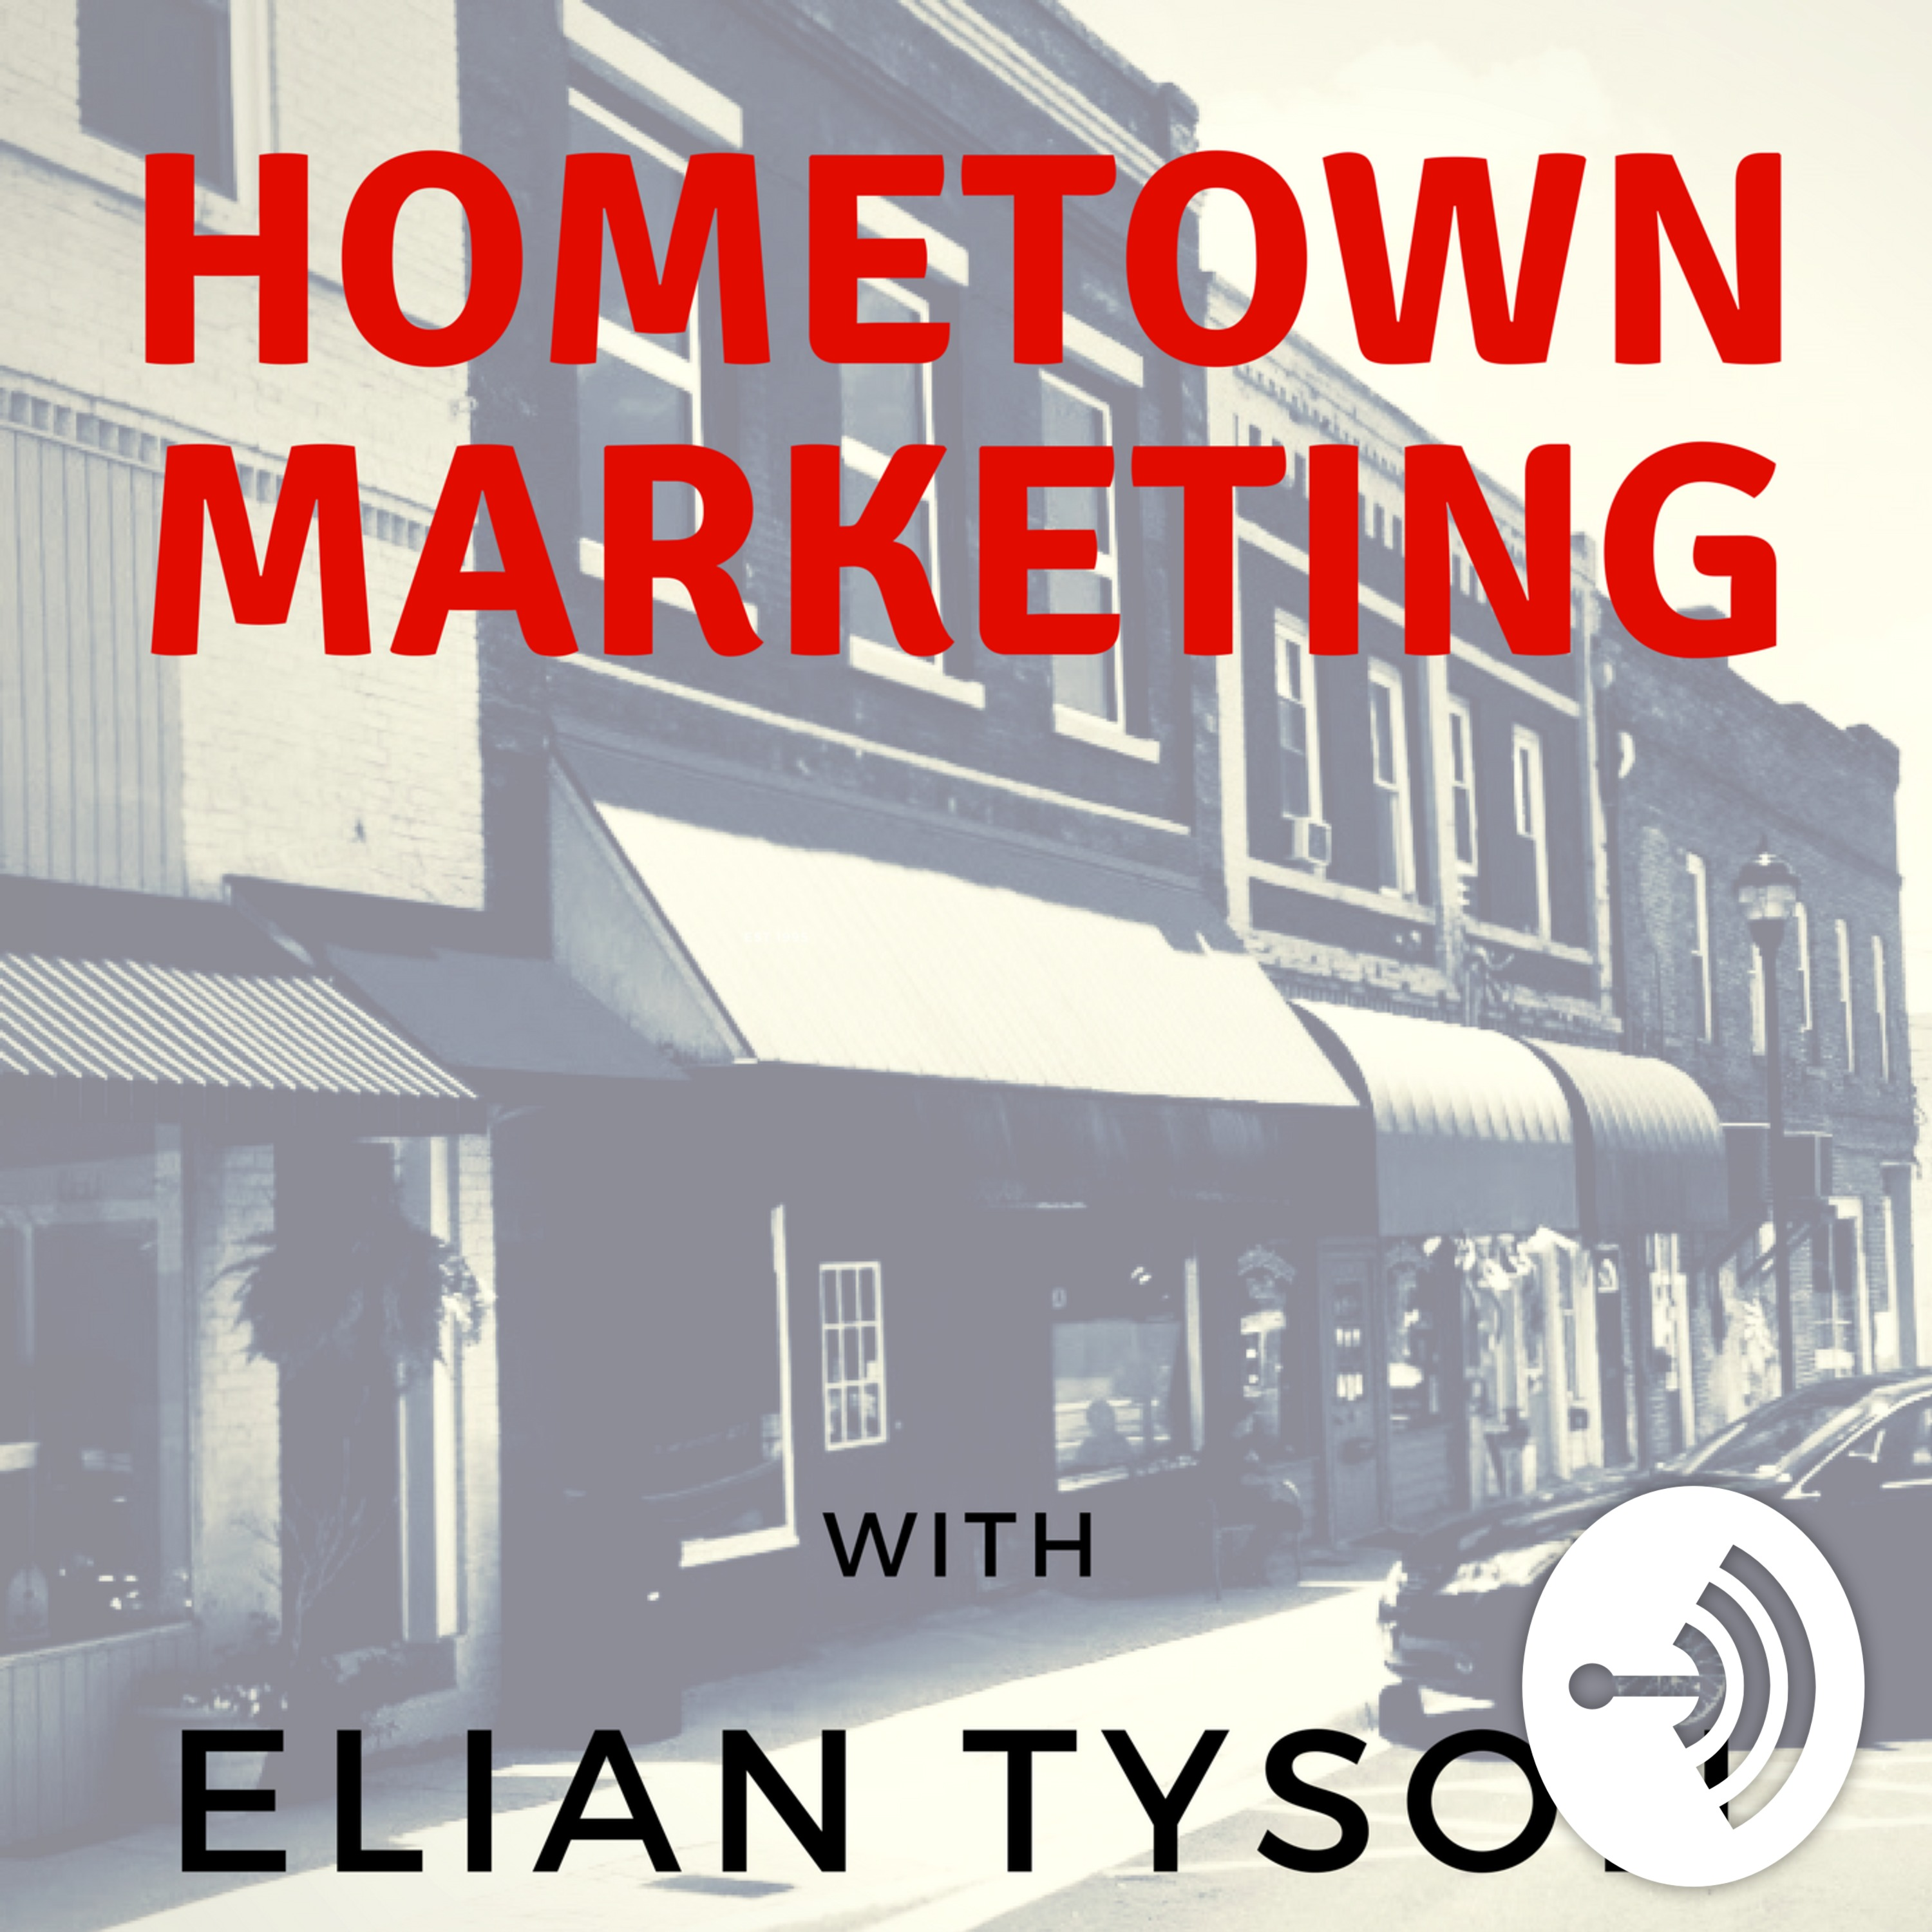 003: Email Marketing for Small Town Business